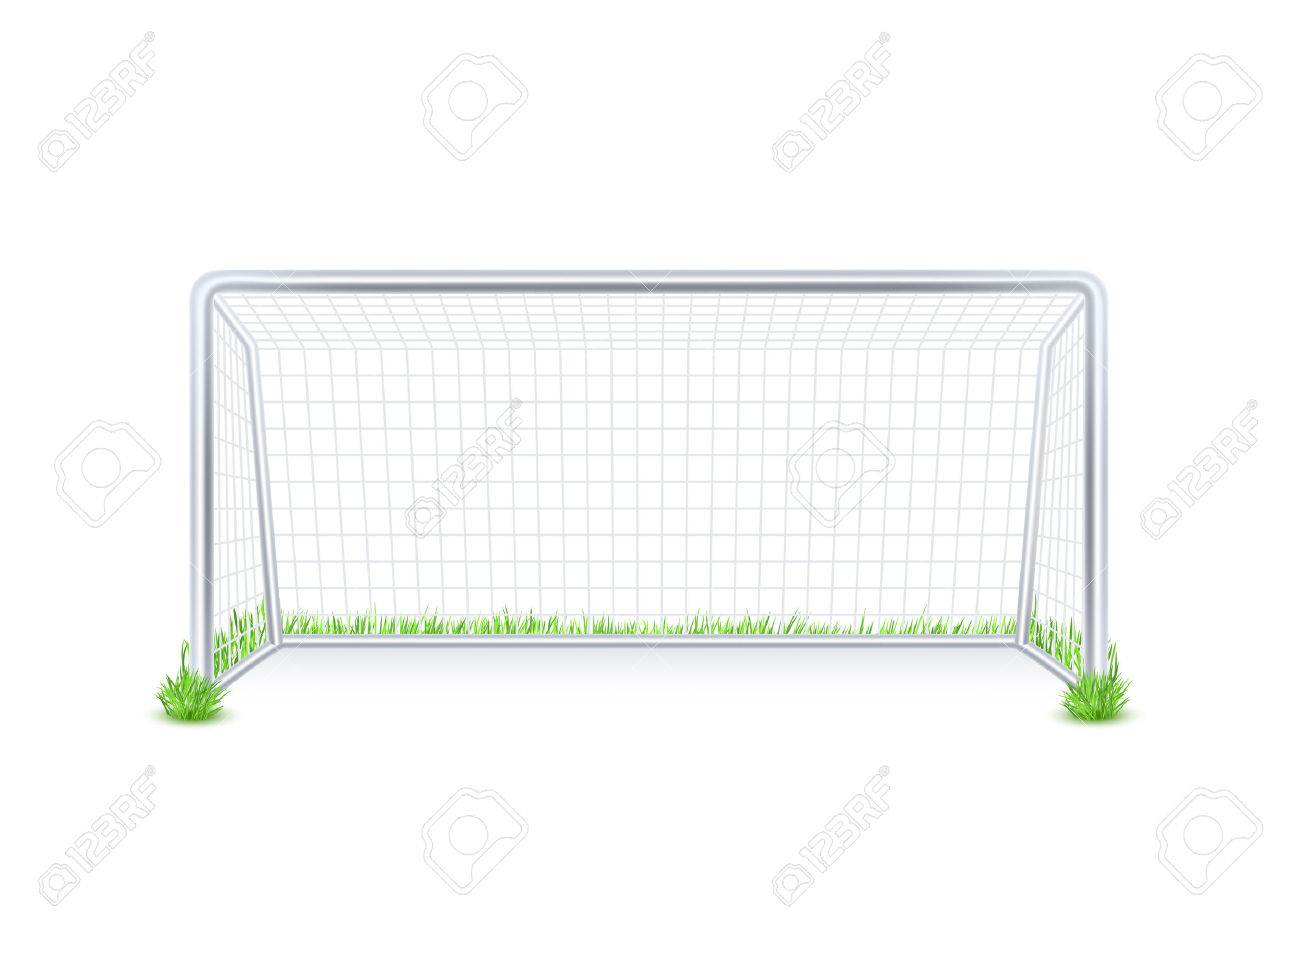 Outdoor soccer football game goal metal gate with white net on grass background print abstract  vector illustration Stock Vector - 51154673